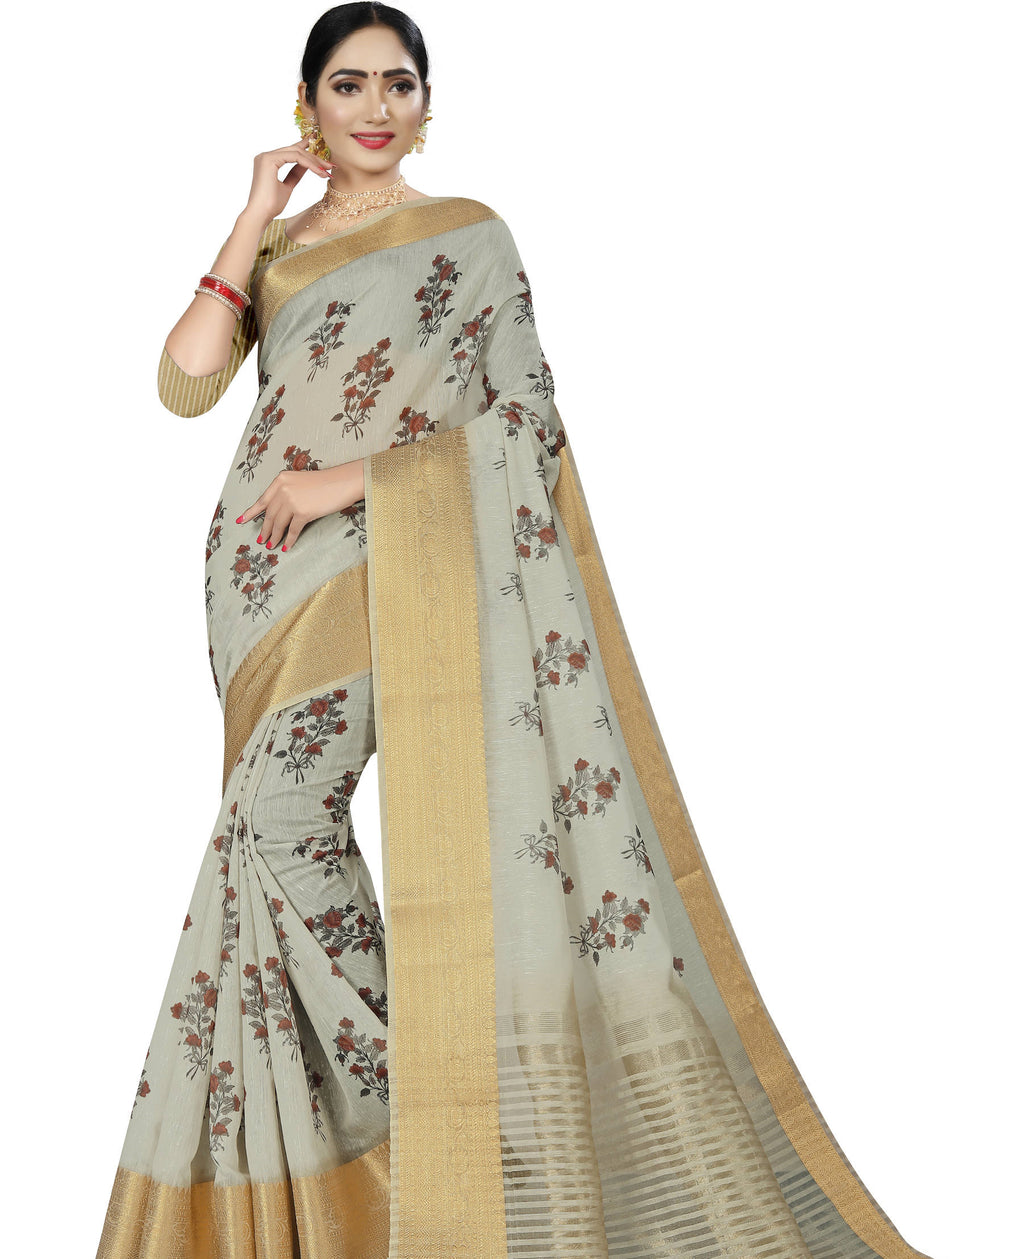 Grey Color Banarasi Weaving Dola Silk Festive Wear Digital Print Sarees NYF-7763